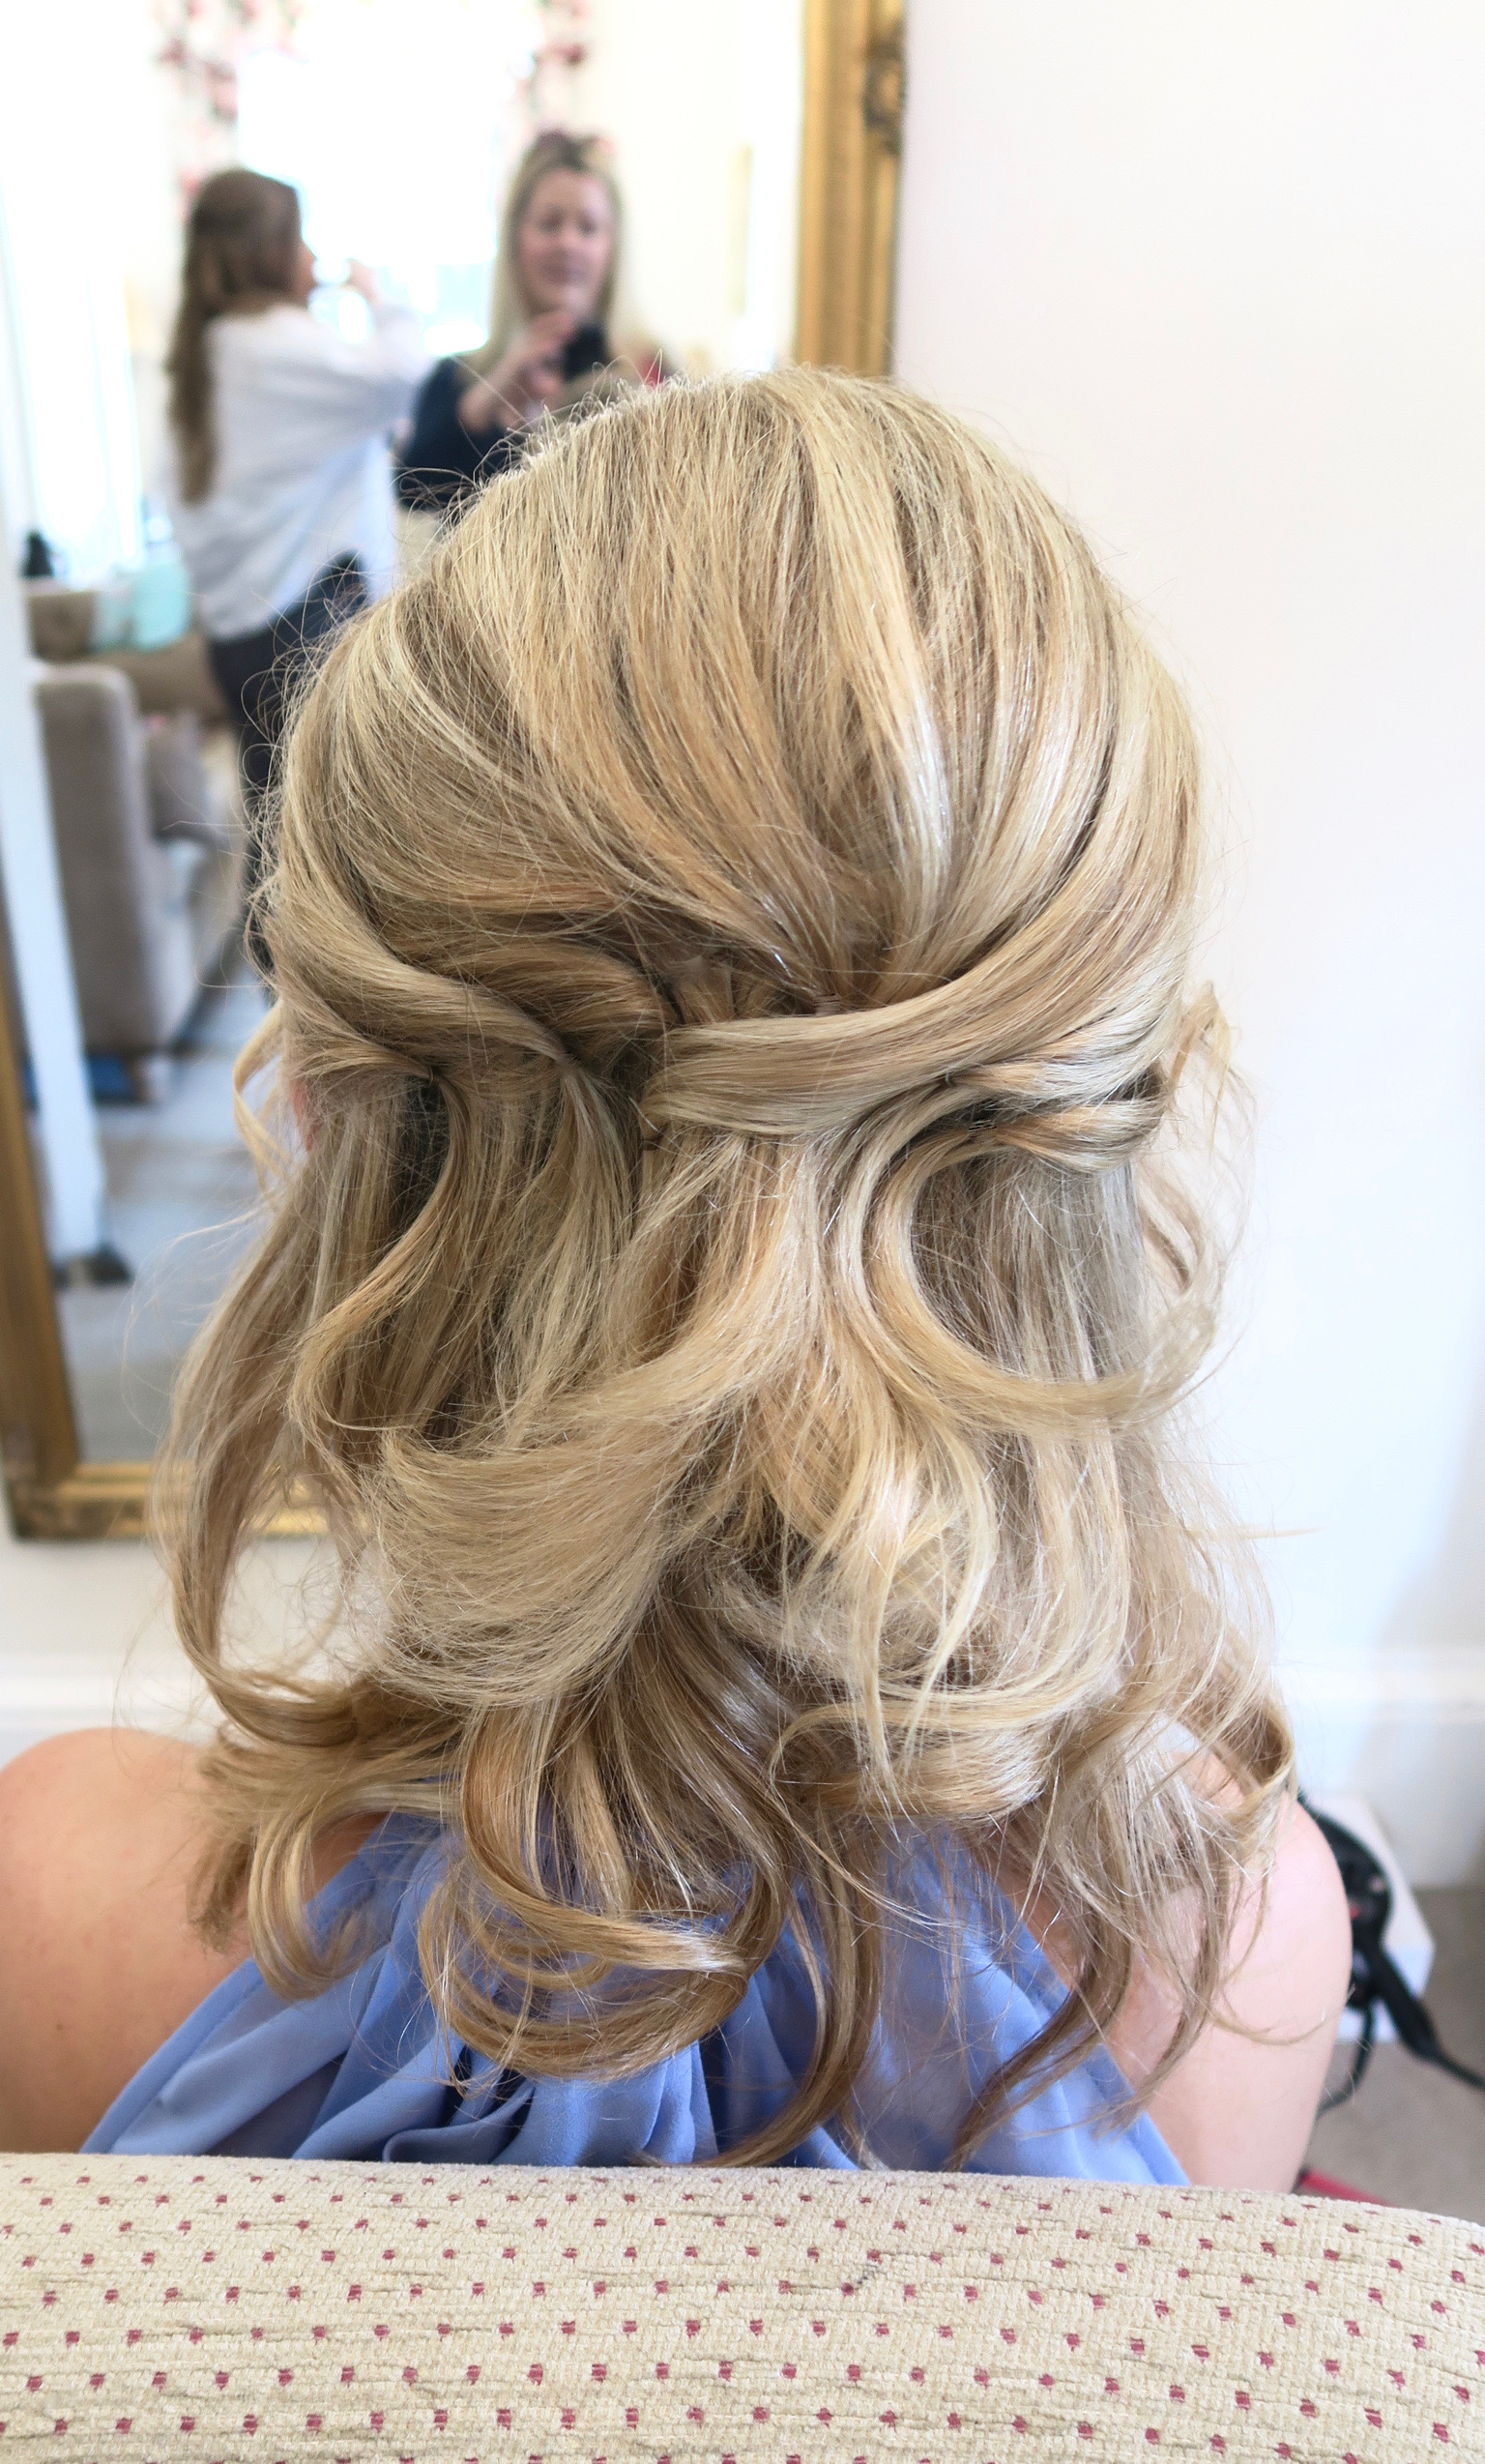 Wedding Hair & Makeup edinburgh